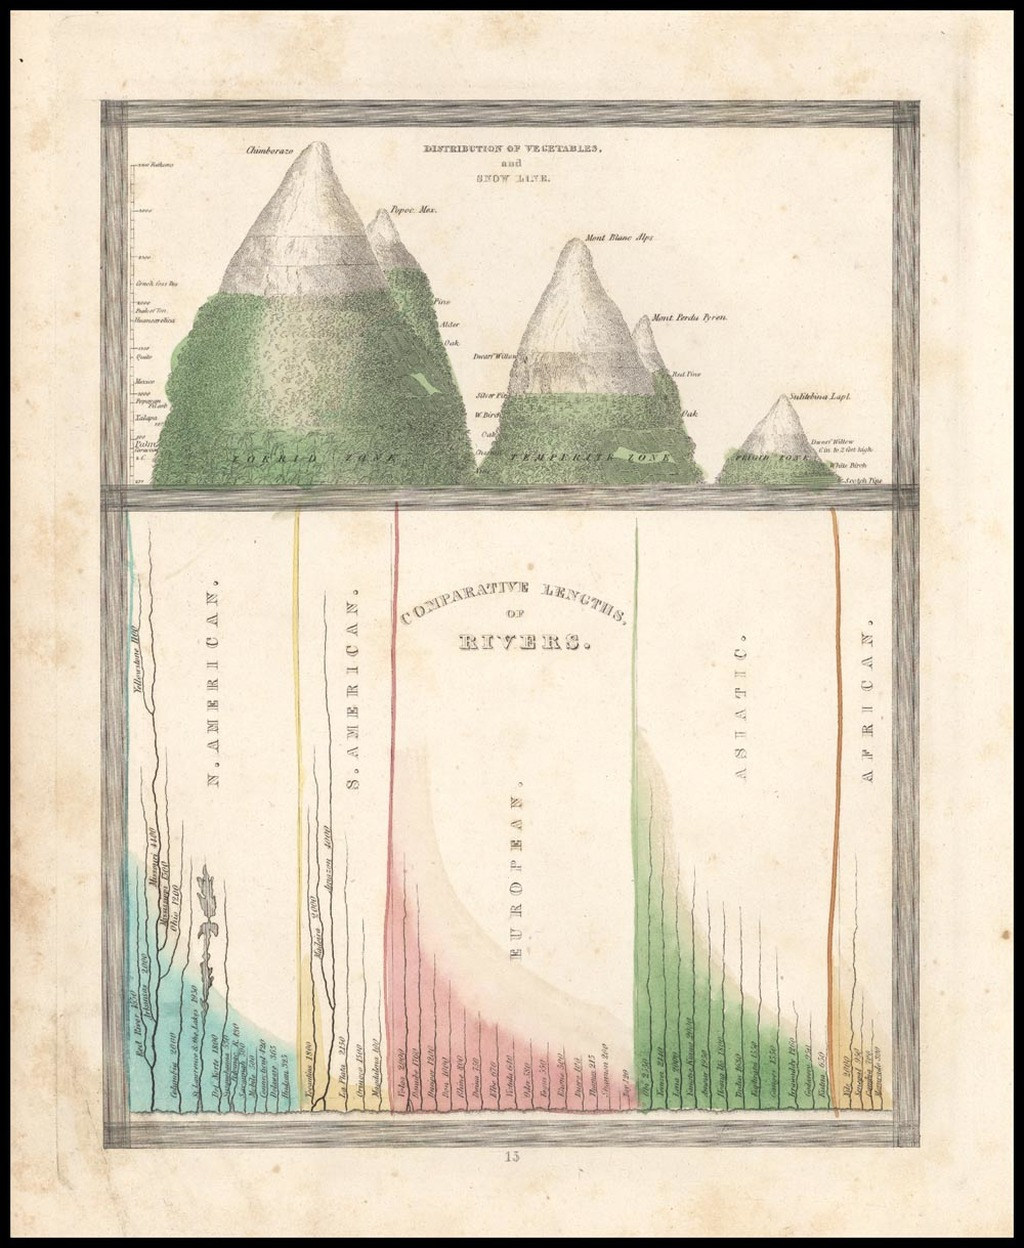 Distribution of Vegatables and Snow Line [with] Comparative Lengths of Rivers By Thomas Gamaliel Bradford